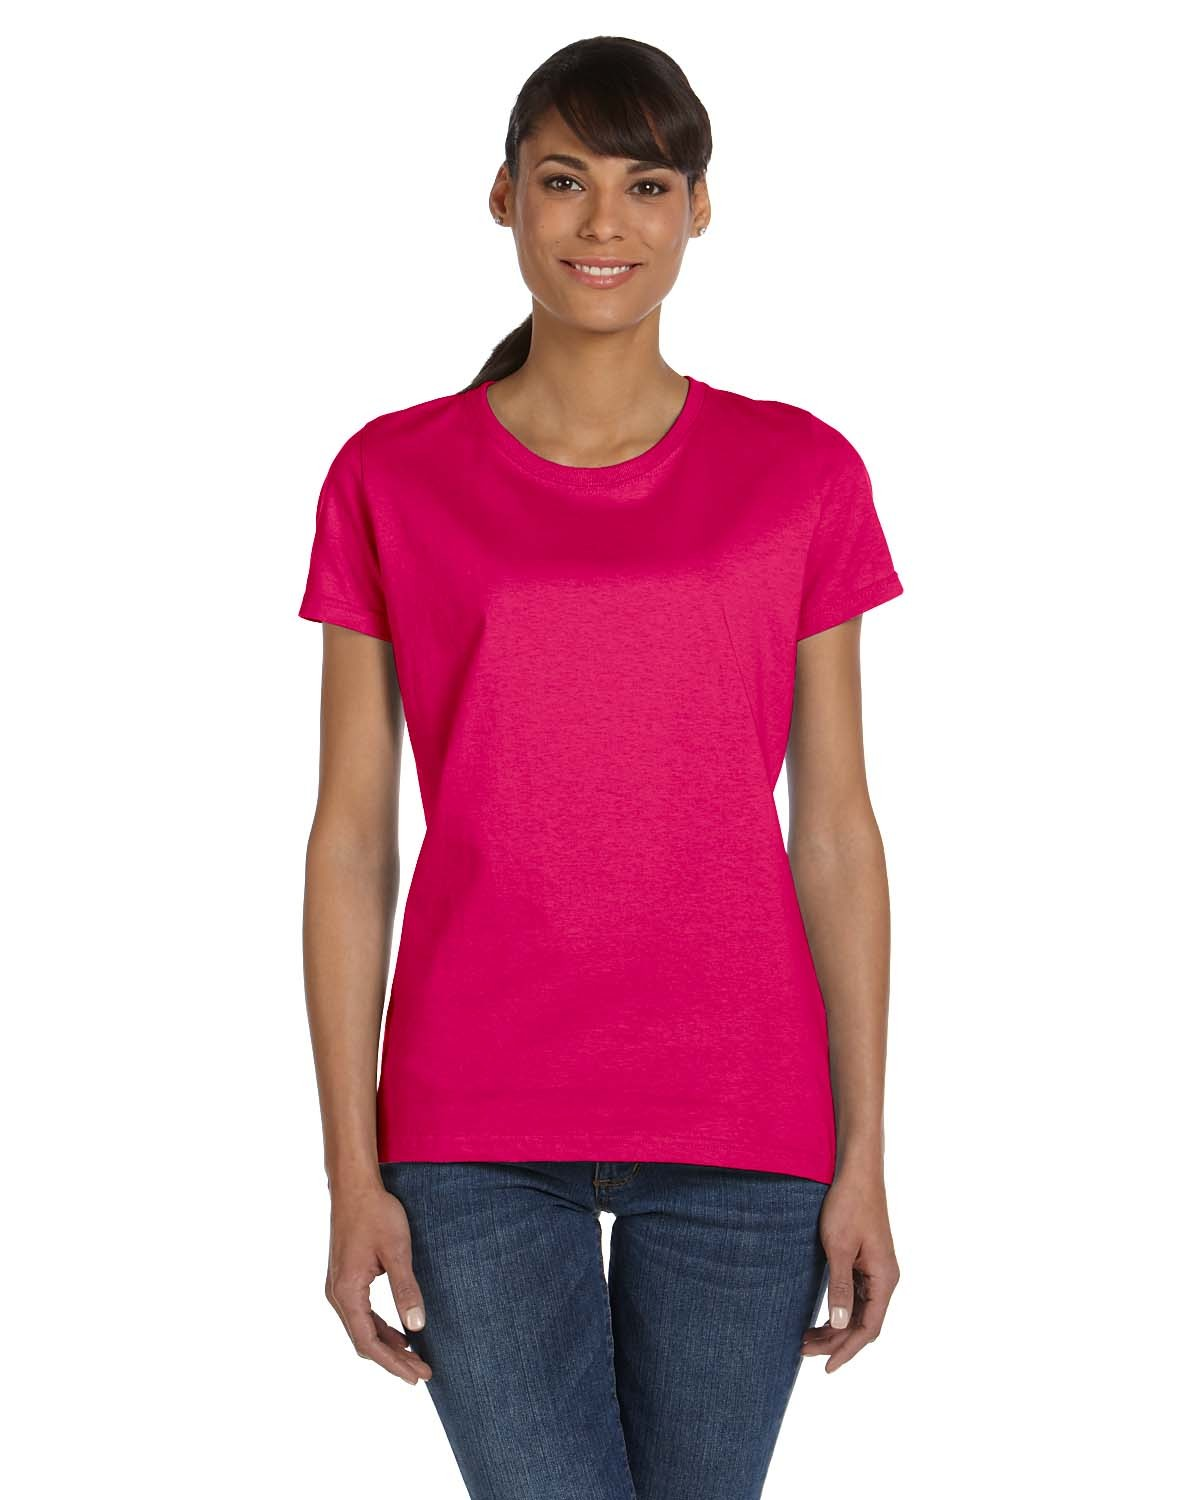 L3930R Fruit of the Loom CYBER PINK